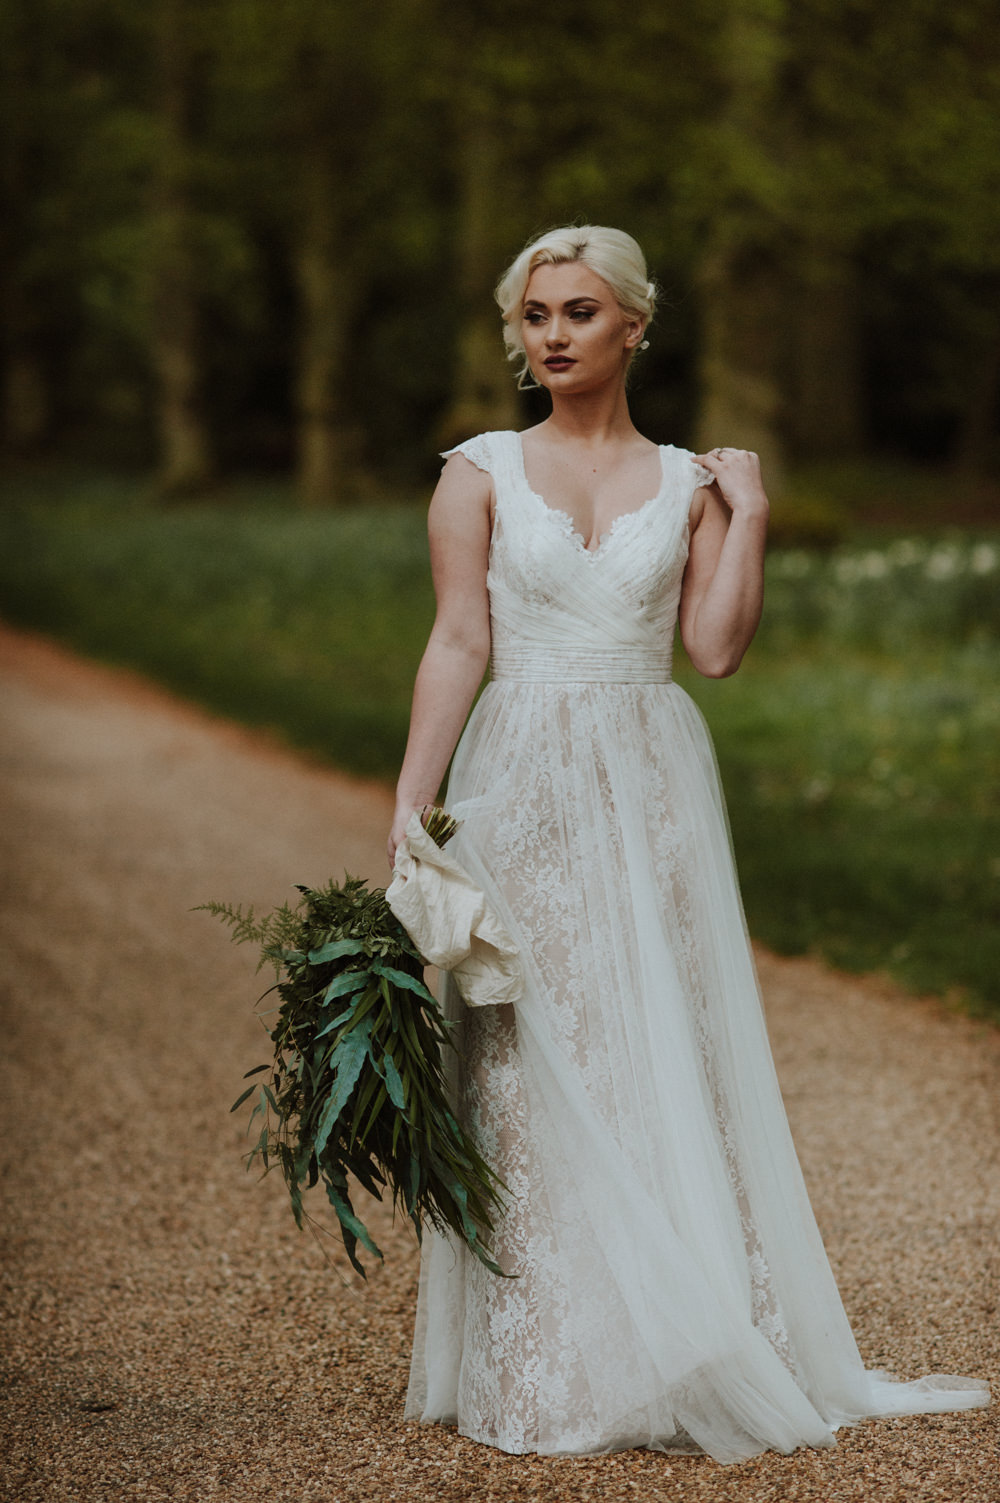 Bride Bridal Dress Gown Lace V Neck A Line Greenery Foliage Bouquet Organic Foliage Wedding Ideas Rubie Love Photography